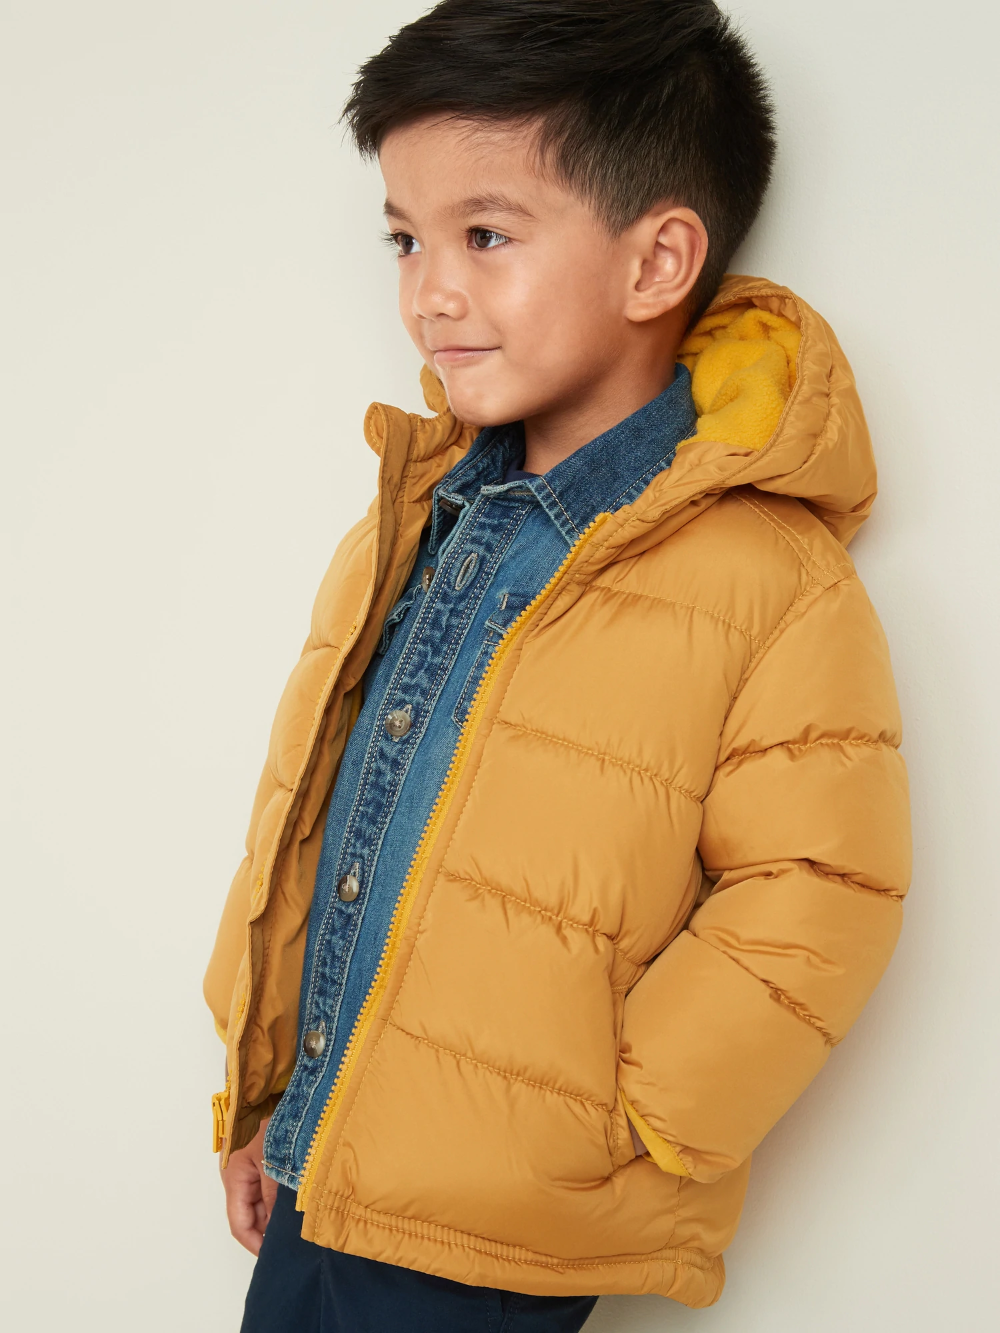 Frost Free Hooded Puffer Jacket For Toddler Boys Old Navy Toddler Boys Boy Outerwear Toddler [ 1333 x 1000 Pixel ]